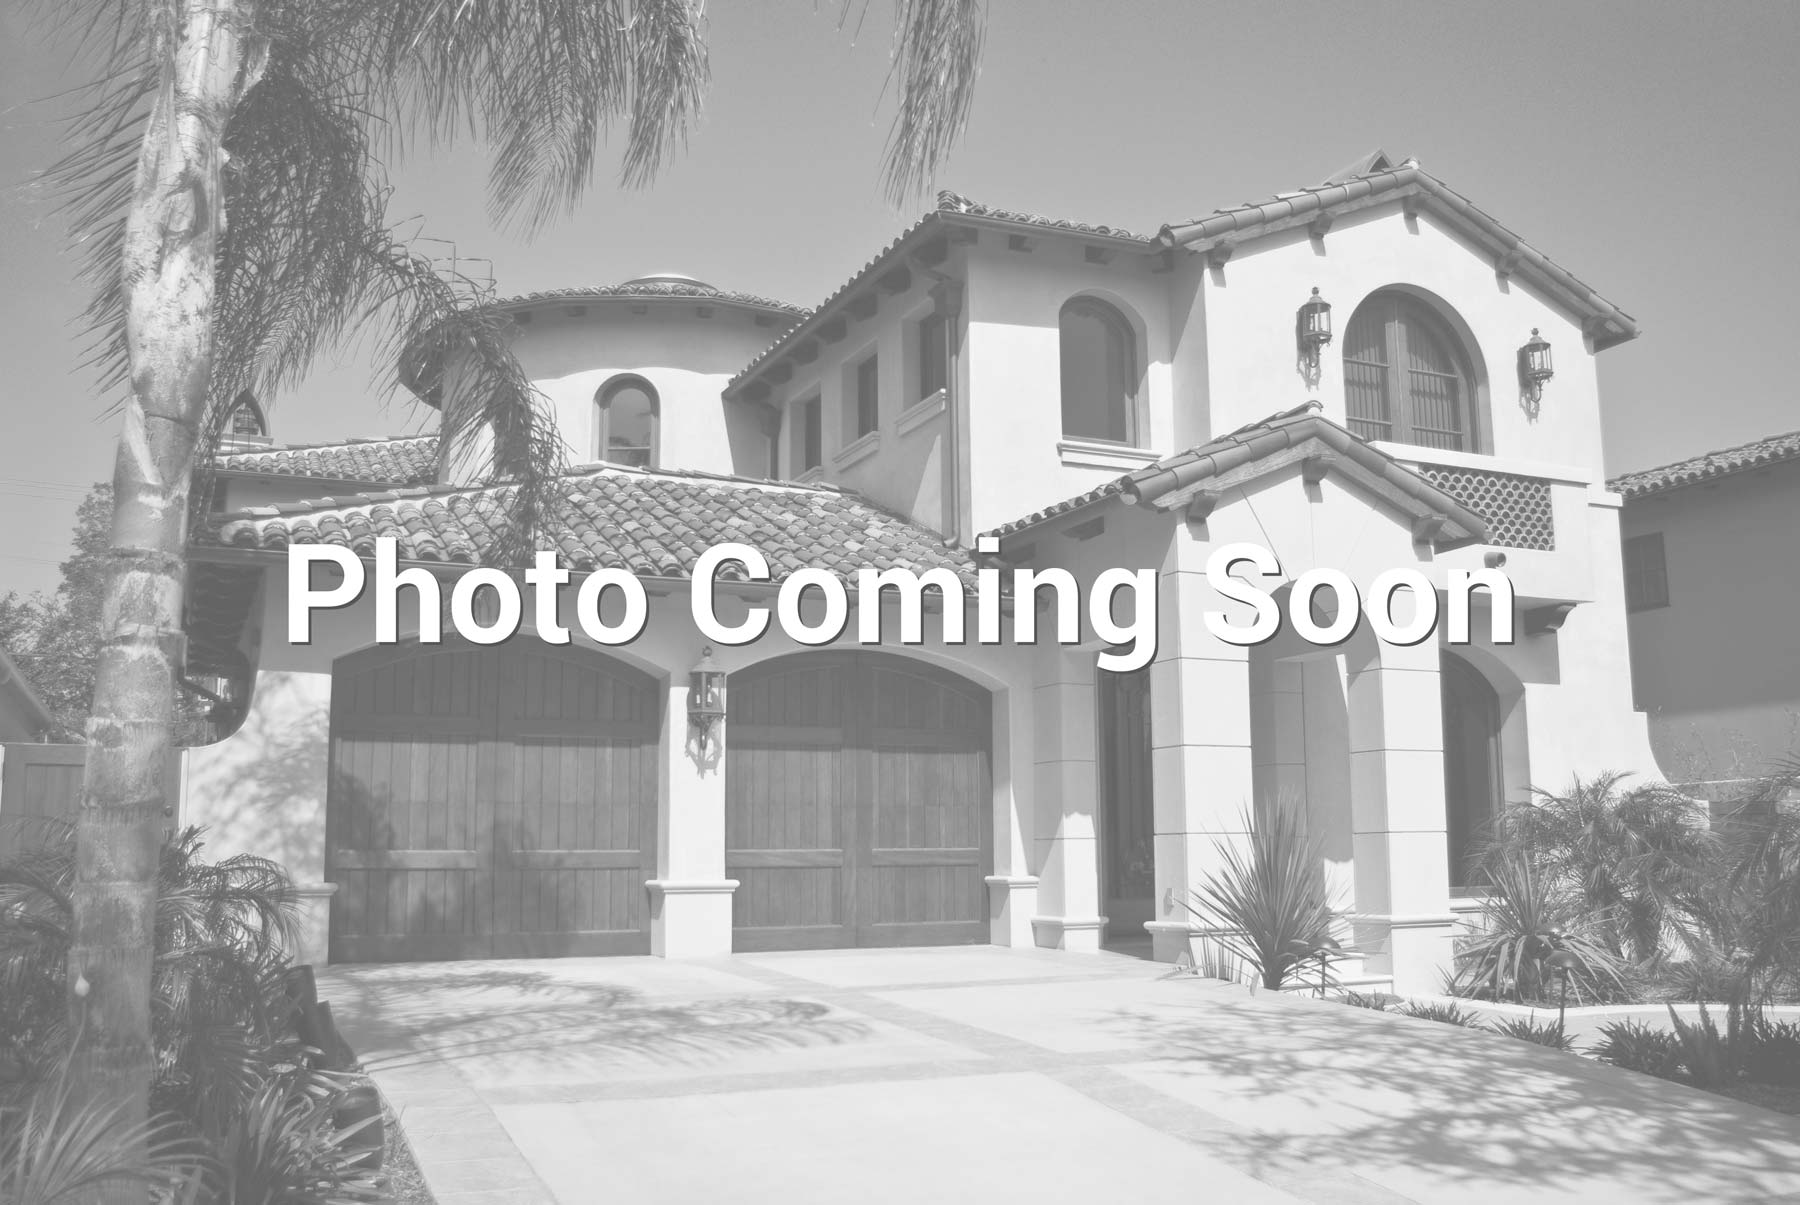 $575,000 - 5Br/3Ba - Home for Sale in Harbor Island Amd Lot 1-108 Tr A-i, Phoenix